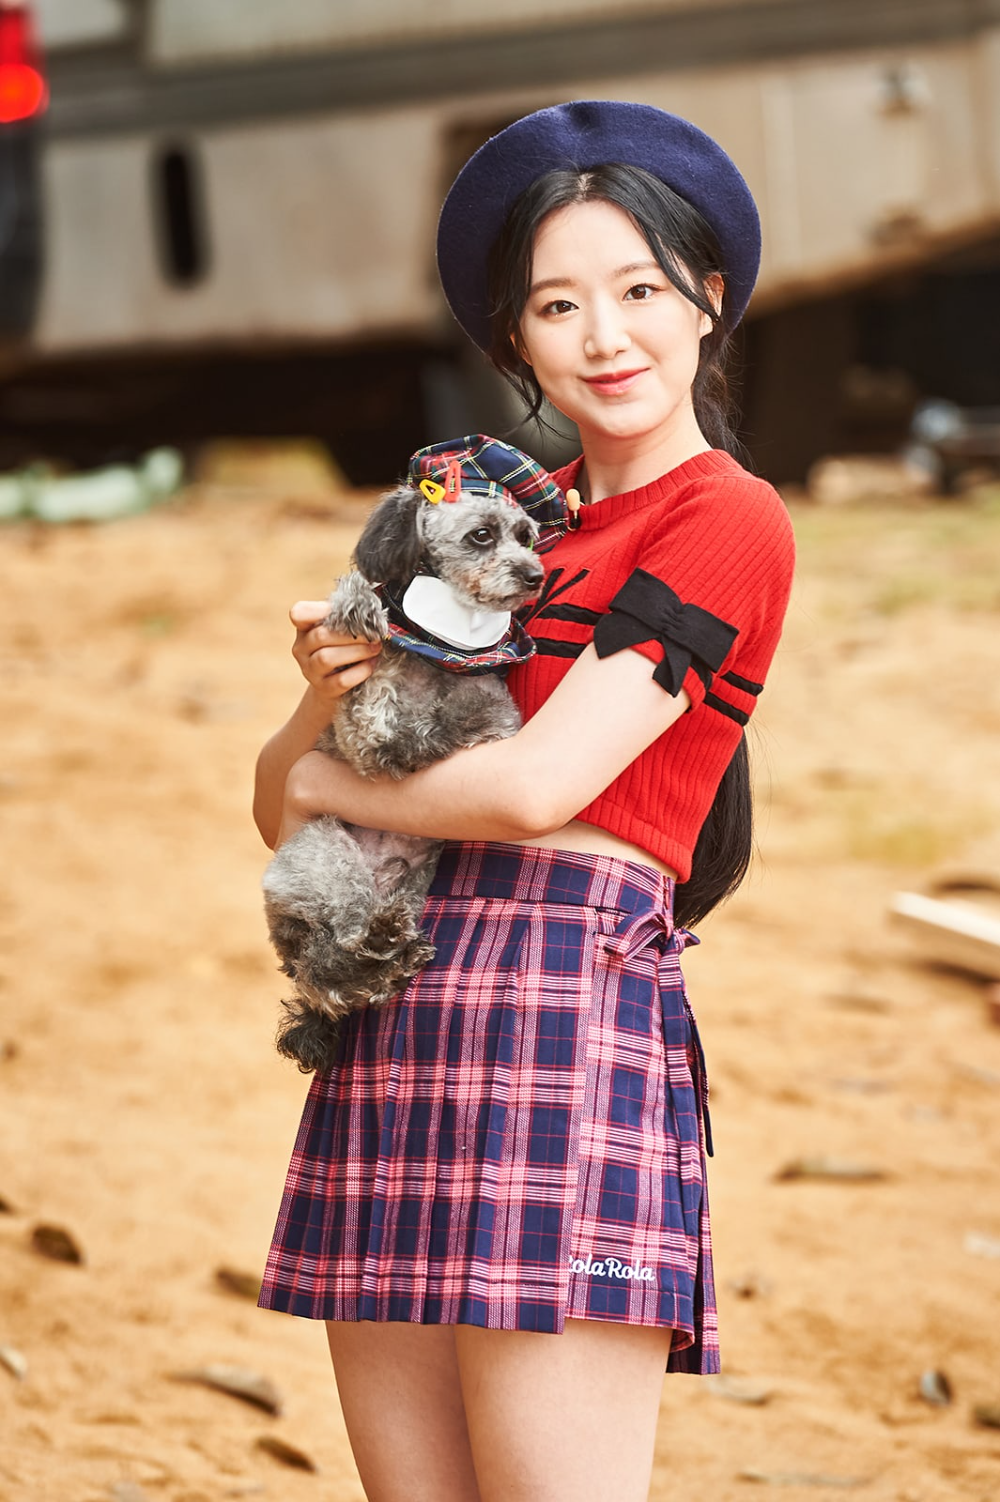 Pin By Yesugen Tsogbuyan On G Idle In 2021 Dog Competitions Idol Korean Girl